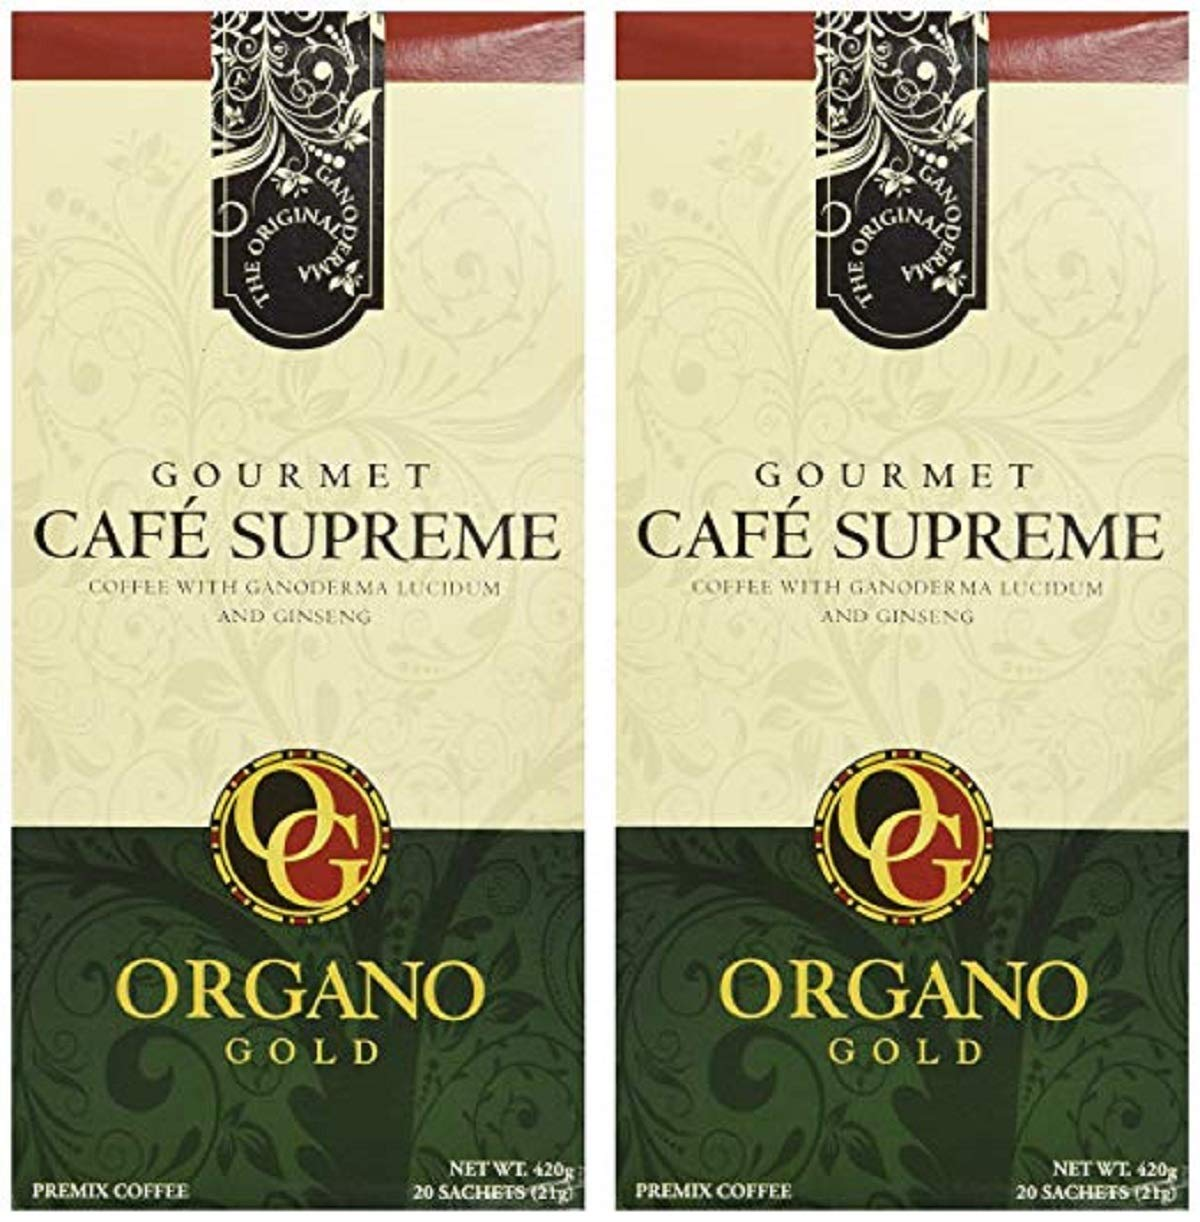 2 New product box Organo Gold Cafe Supreme It is very popular Organic Co Certified 100% Gourmet